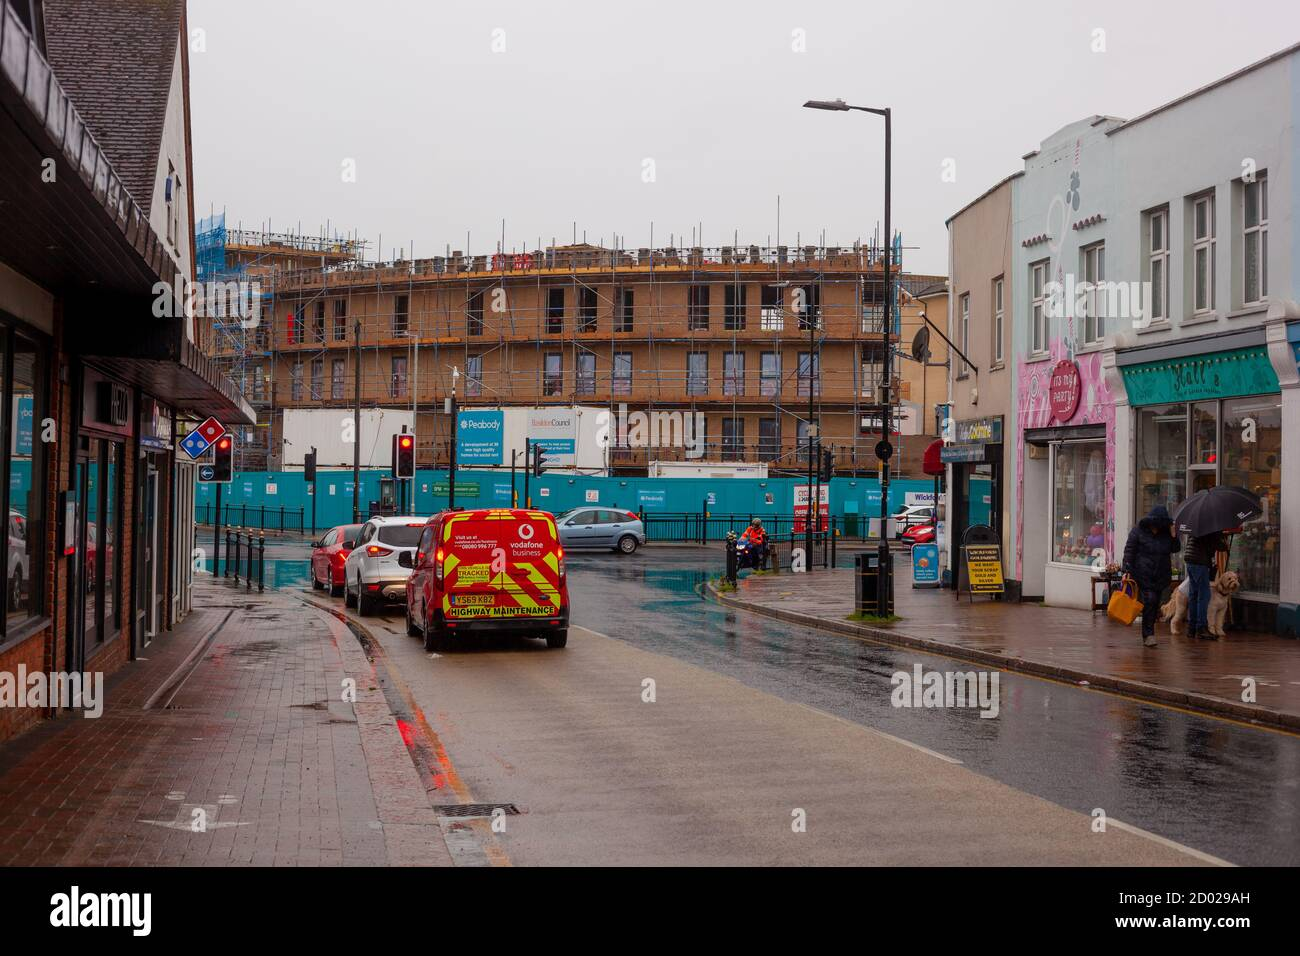 Essex Streets & Towns - View down Wickford High Street with Peabody New building development site in background. Britain, UK, 2020 Stock Photo